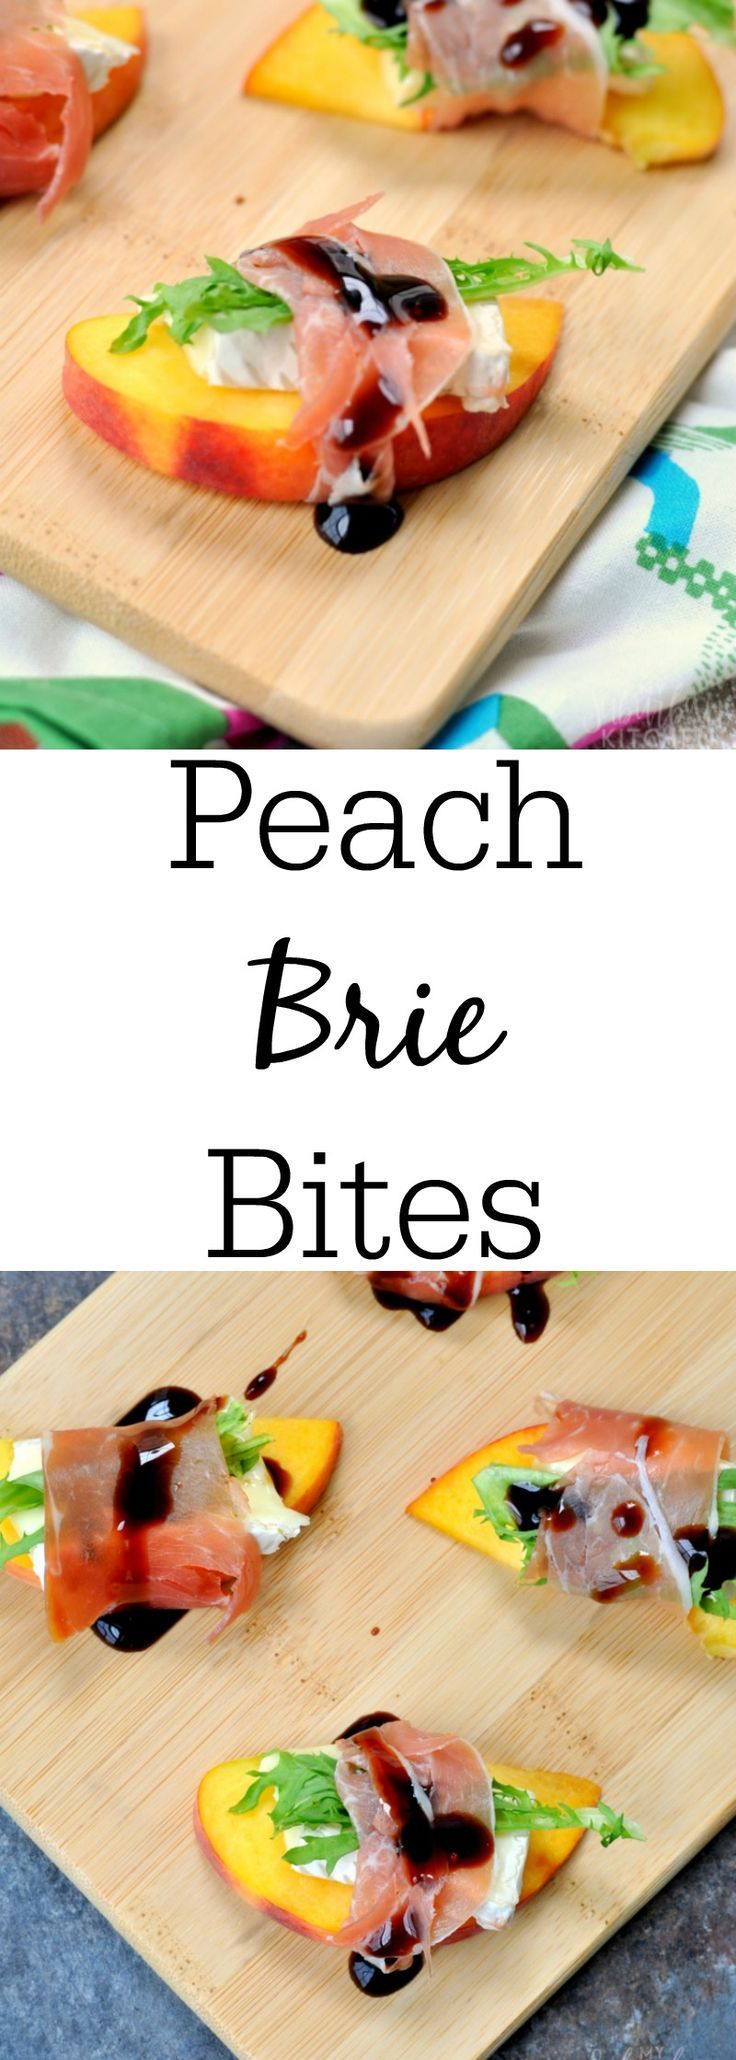 Peach Brie Bites More